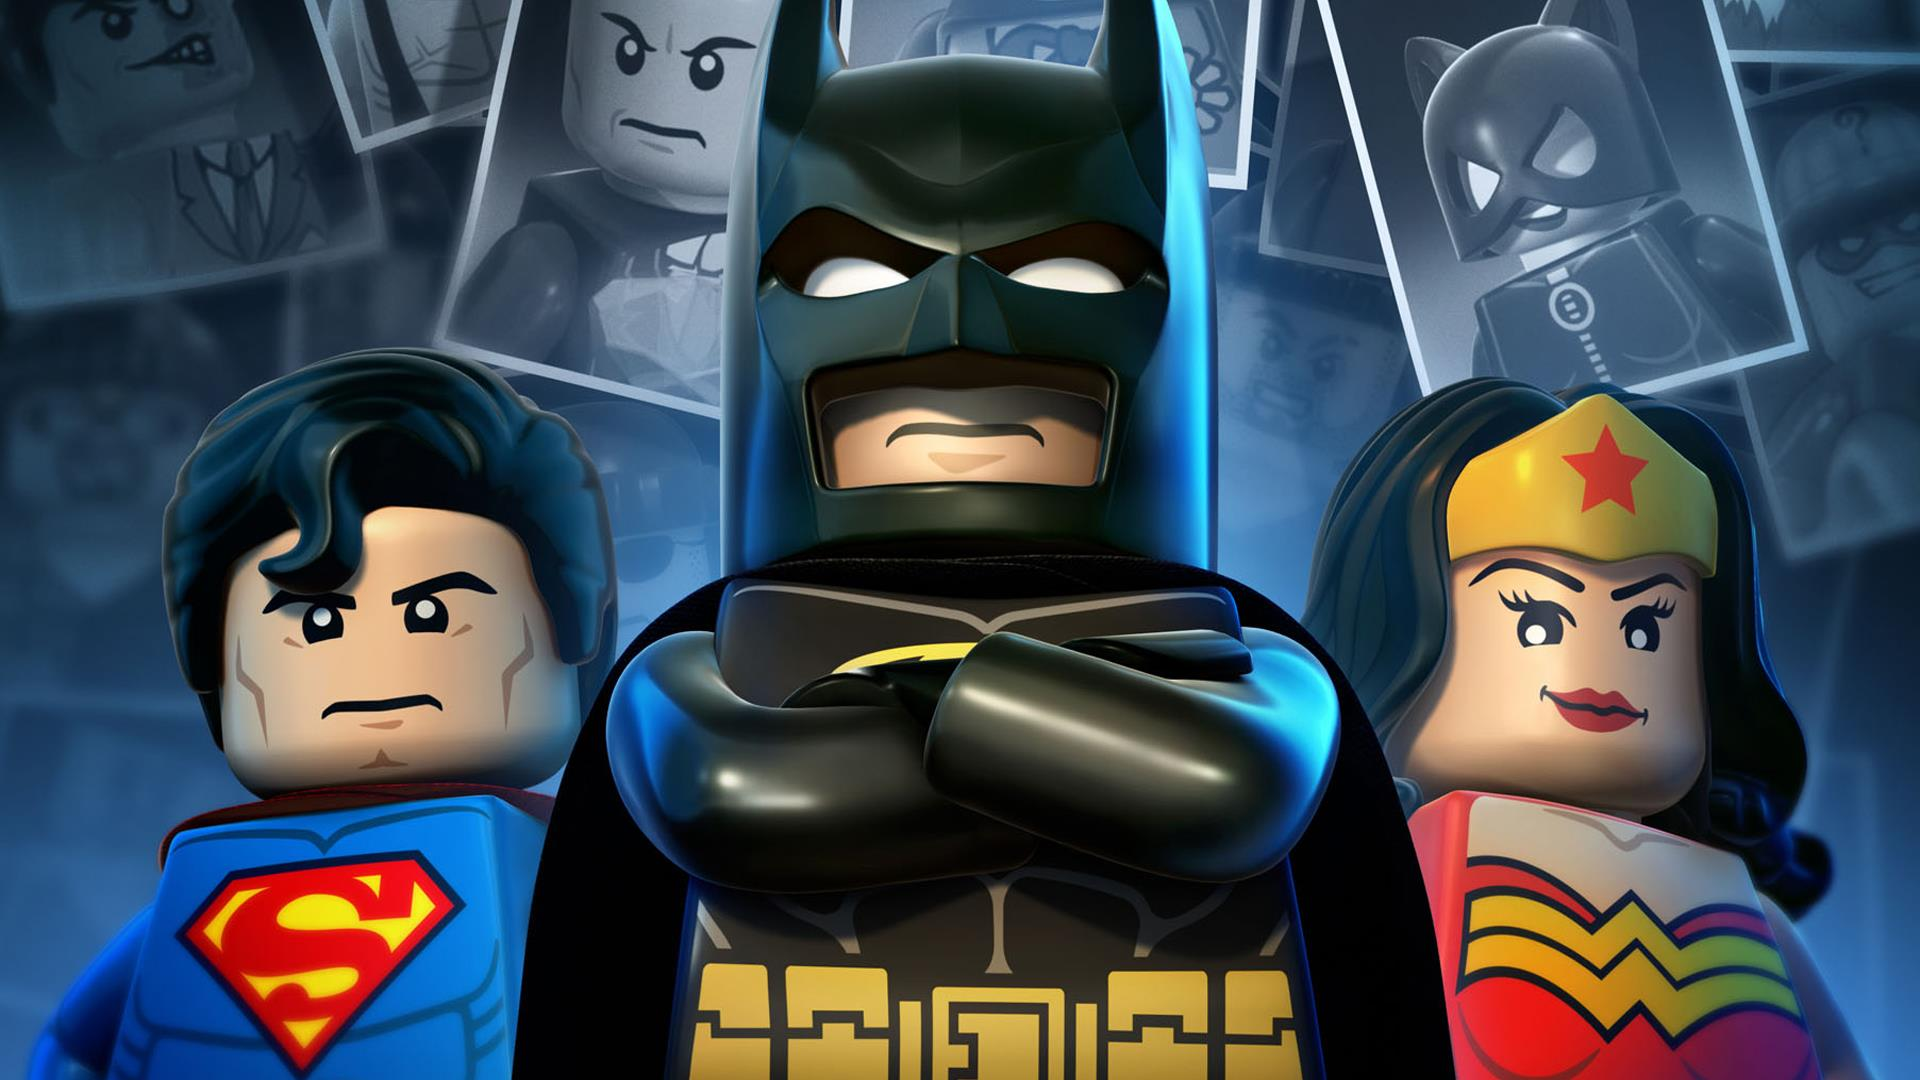 Wonder Woman Batman Superman Lego Hd Cartoons 4k Wallpapers